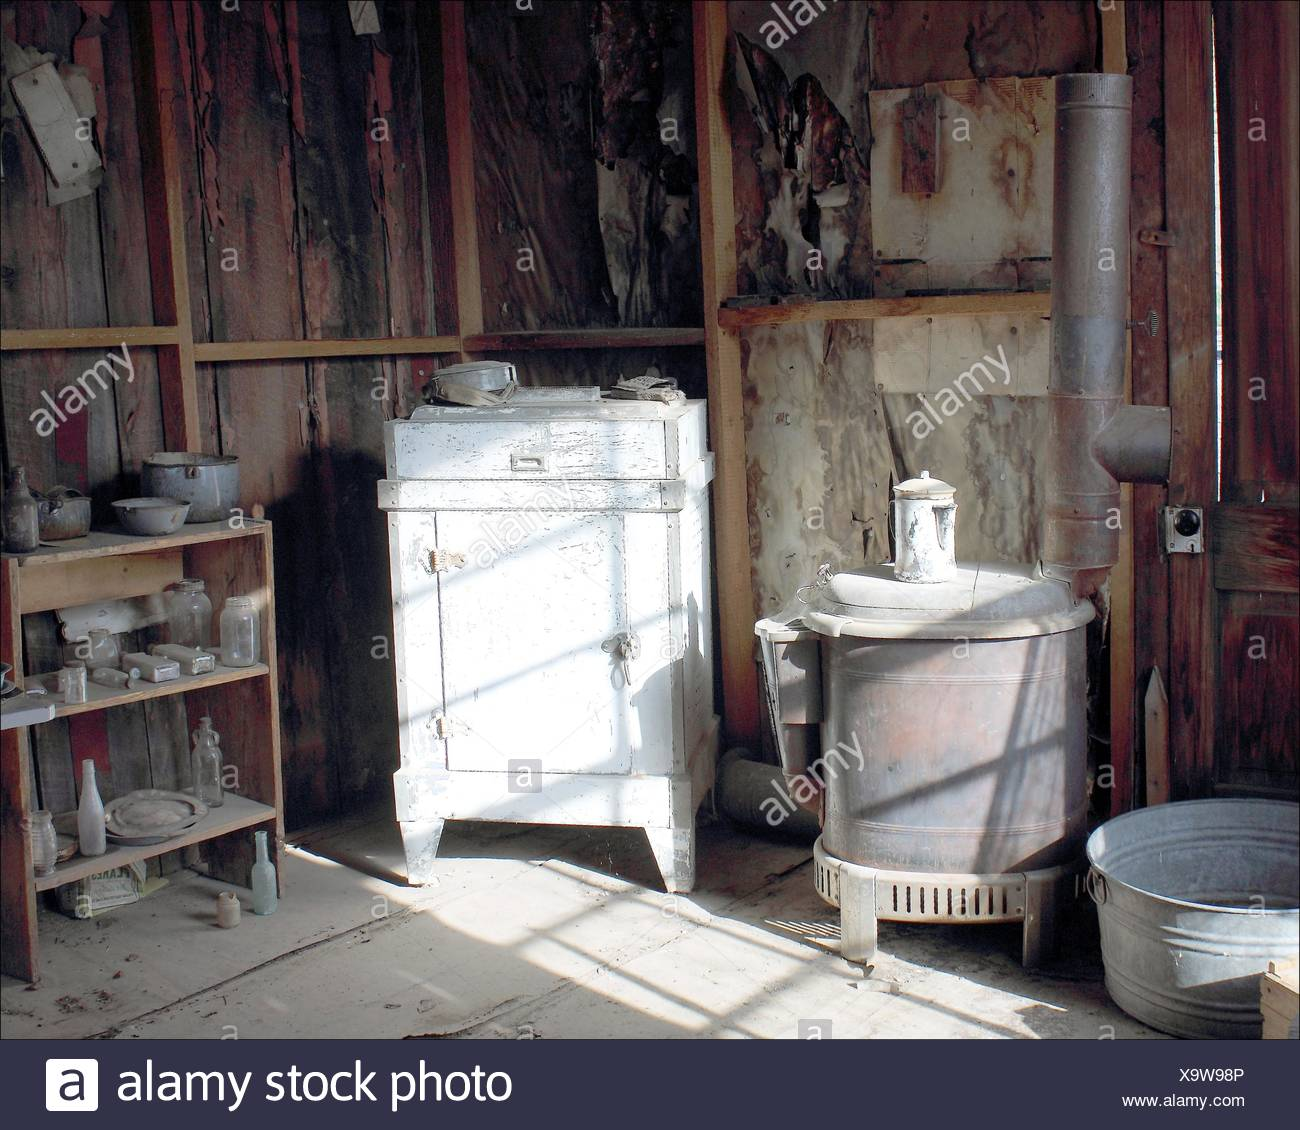 This kitchen in an old cabin in Coloma, California, silently waits for its owner, possibly a miner who never found his own gold strike. - Stock Image